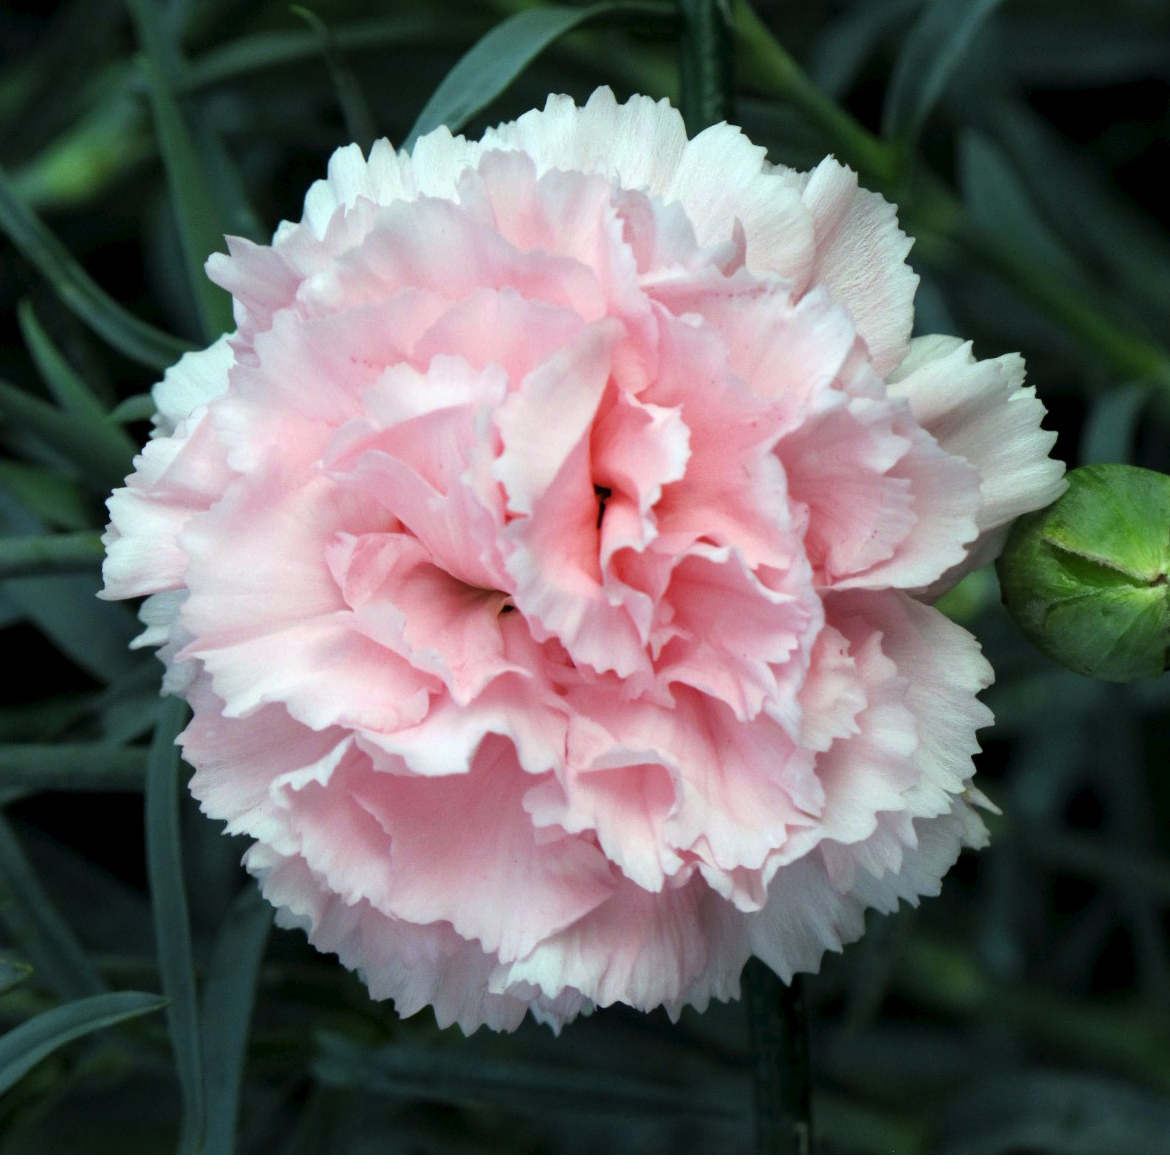 Carnations Flowers  Carnation Flower Gallery 7 Baby pink carnation